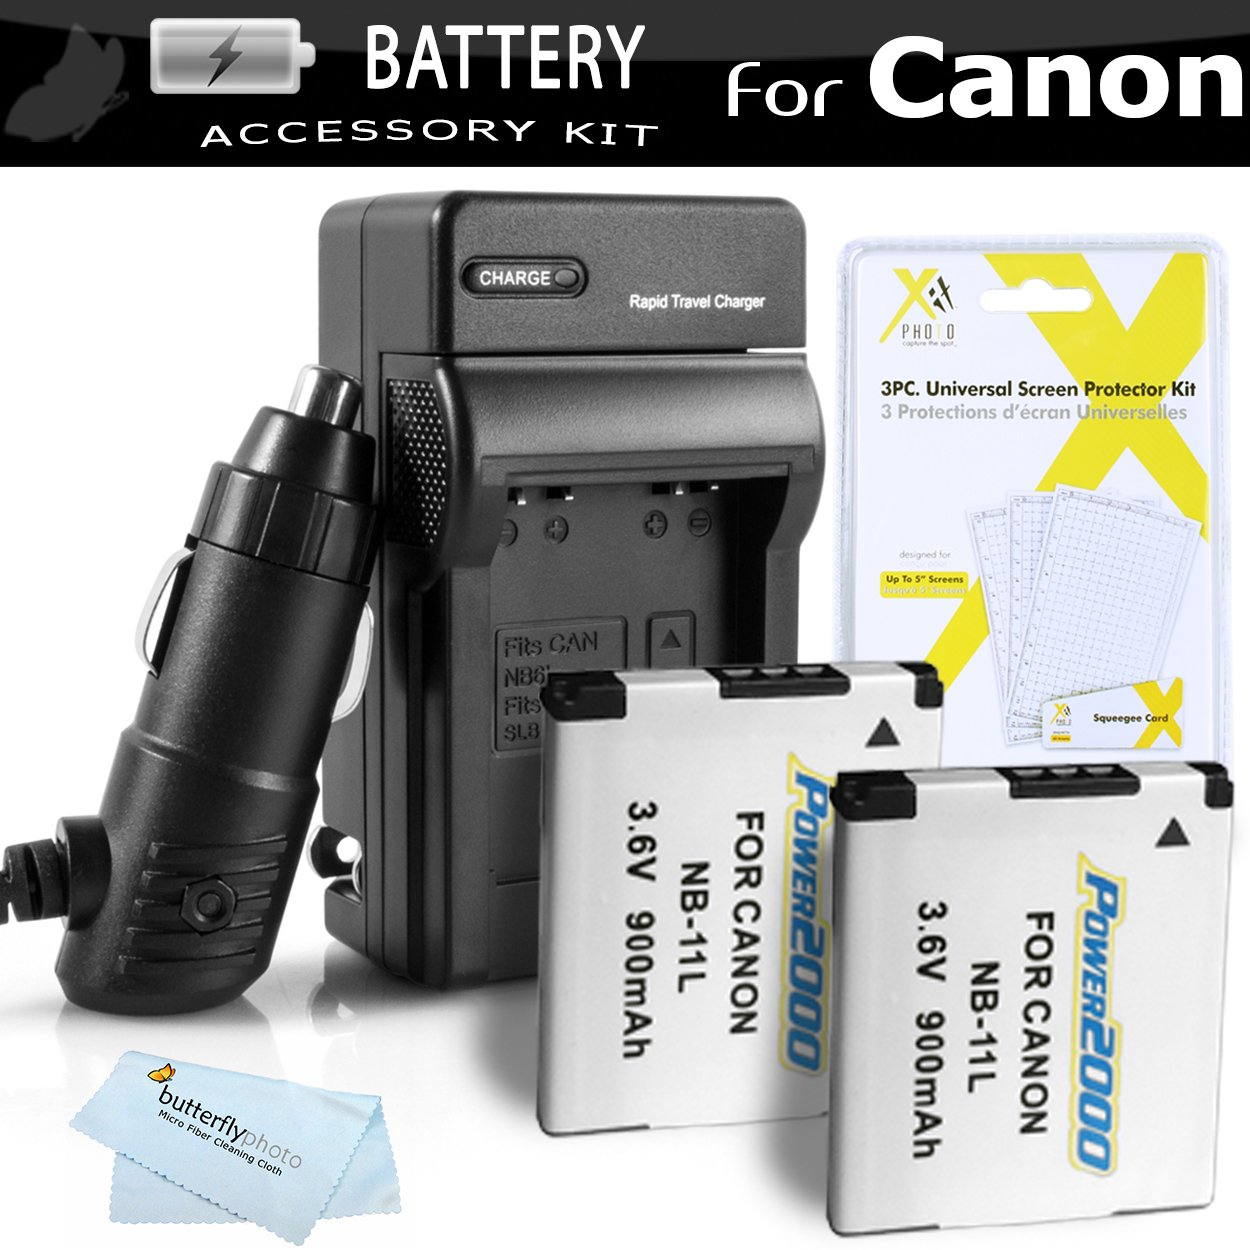 2 Pack Battery And Charger Kit For Canon Powershot ELPH 180, ELPH 190 IS, Elph 150 IS, 170 IS, ELPH 160, SX400 IS, SX410 IS, SX420 IS, 340 HS, ELPH 350 HS, ELPH 360 HS Includes 2 Replacement NB-11L Batteries + Charger ++